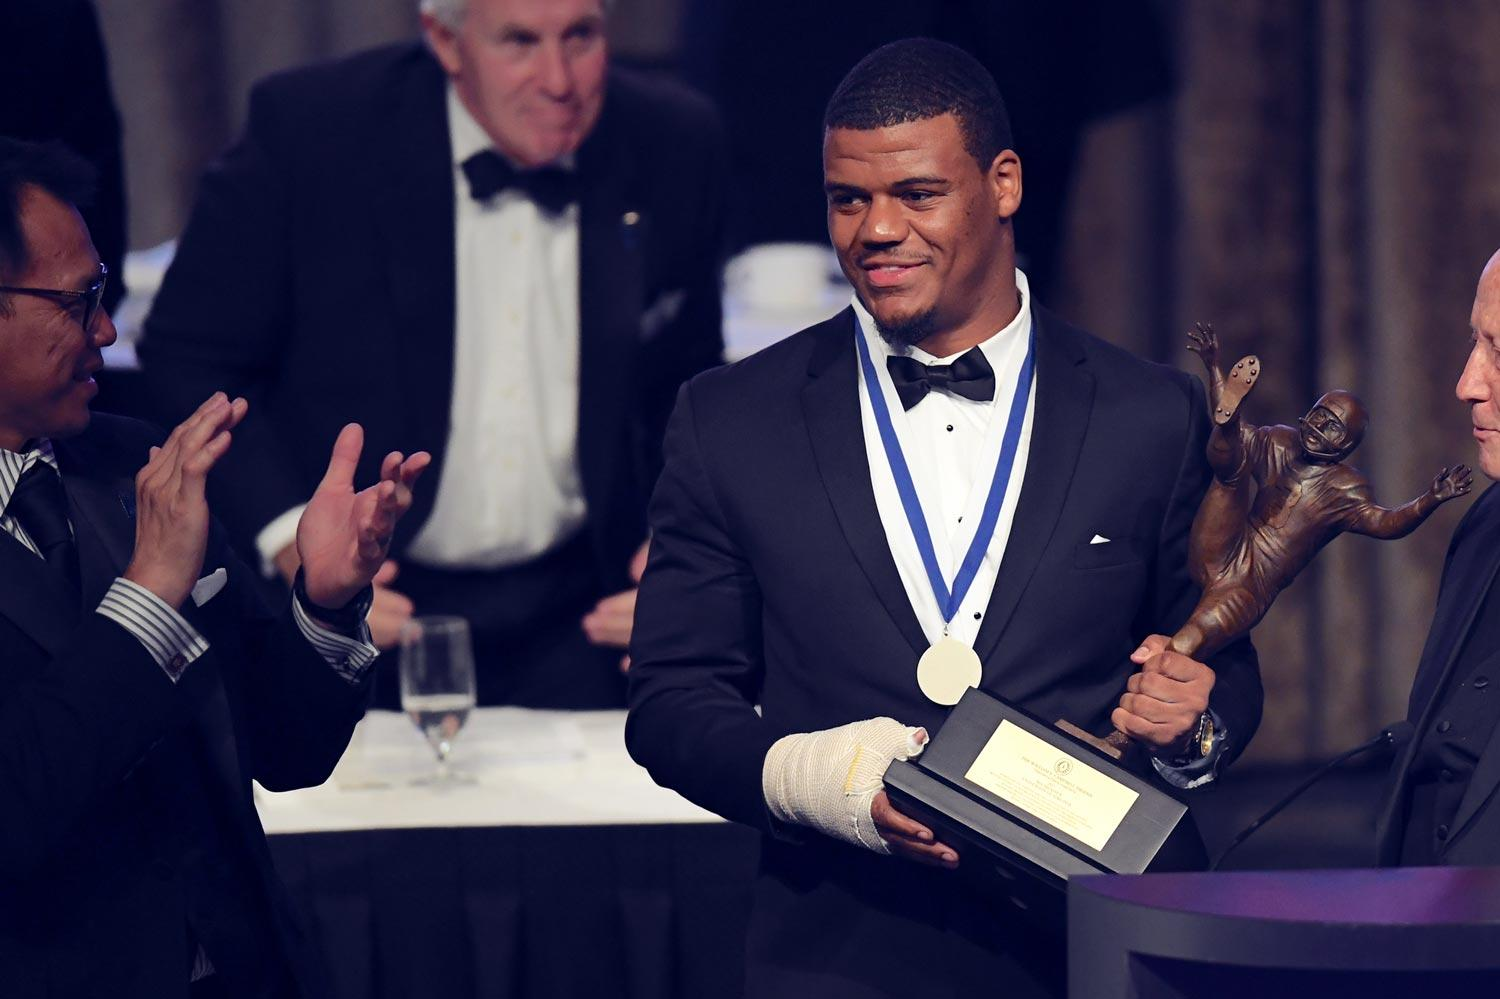 UVA linebacker Micah Kiser accepts the Campbell Trophy Tuesday at the National Football Foundation & College Hall of Fame's annual dinner, held in New York City. (Photo courtesy of UVA Athletics)